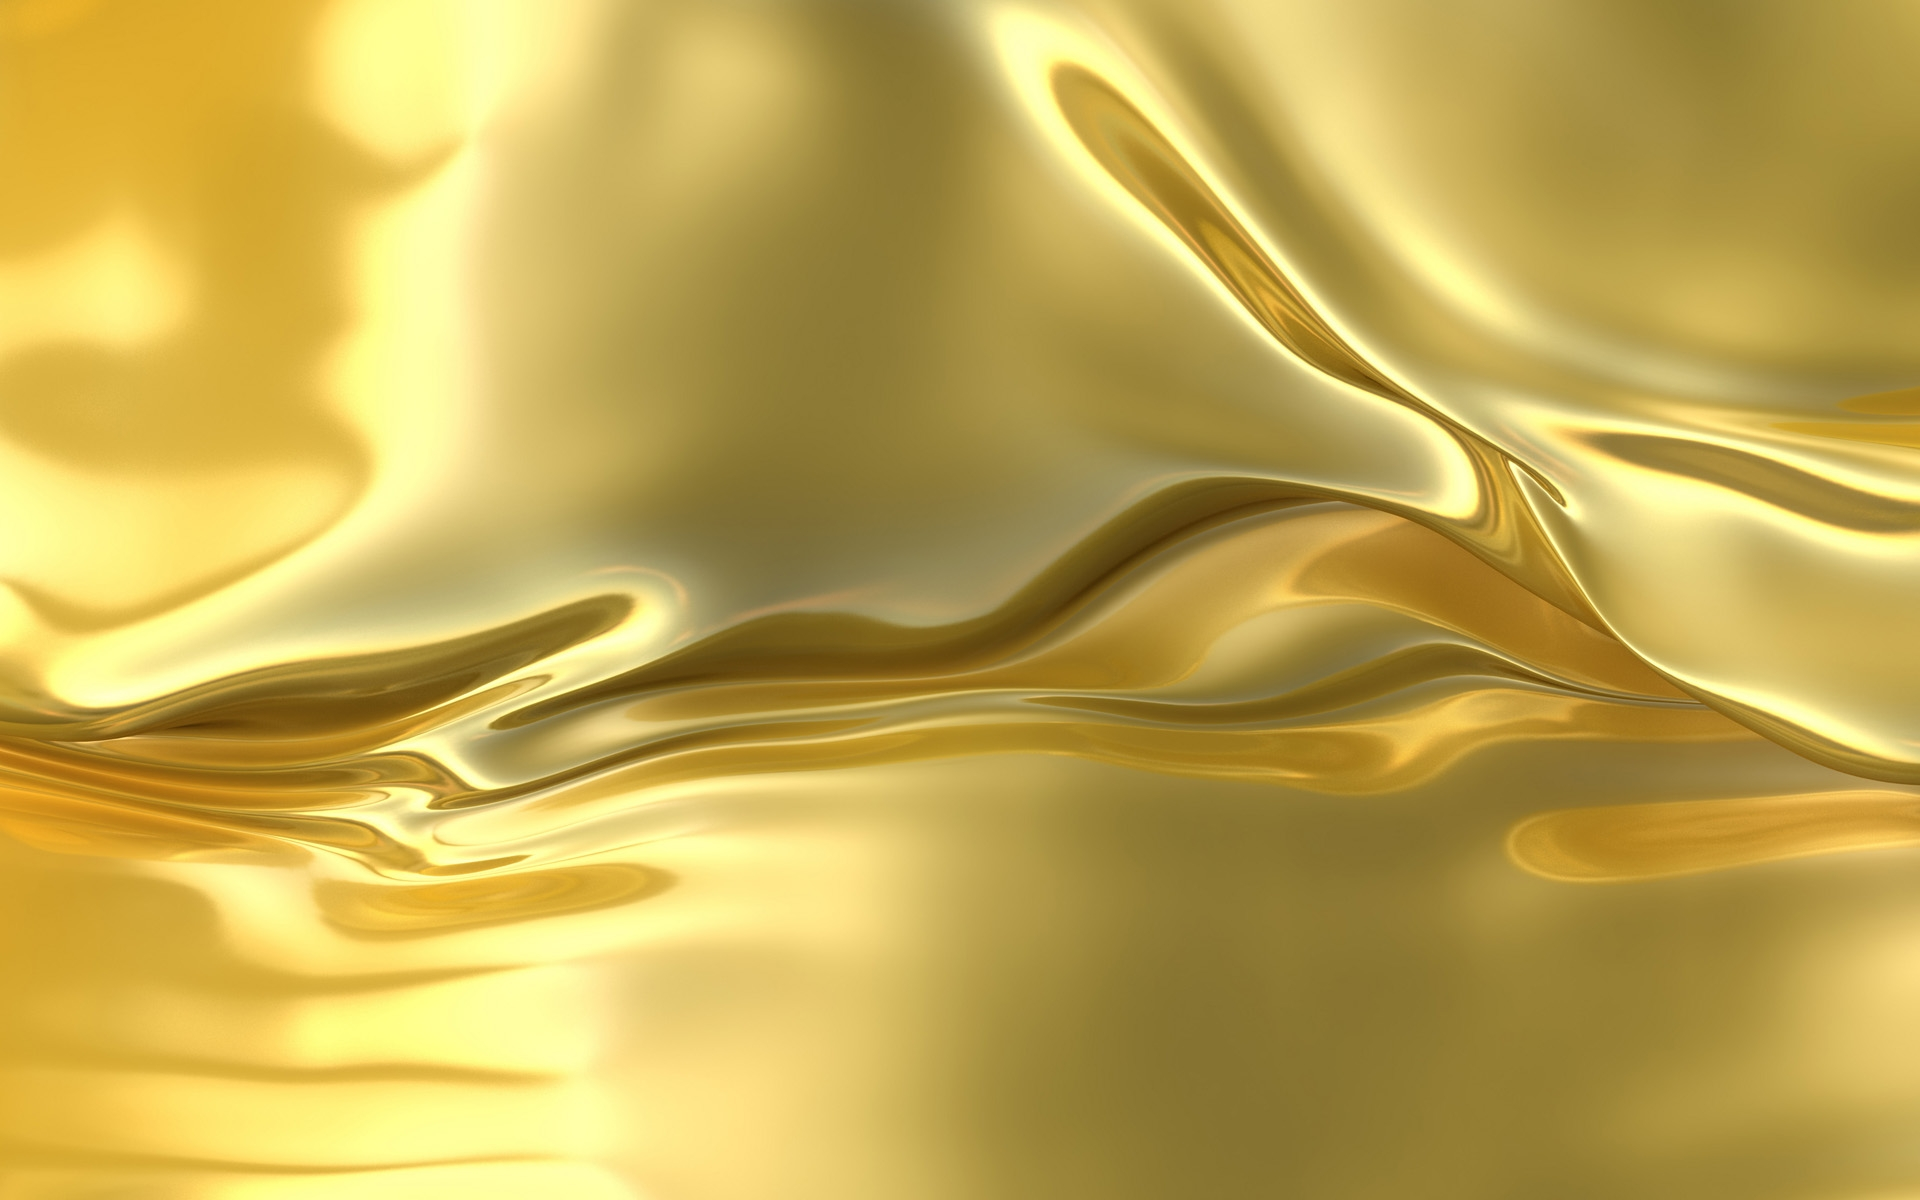 hd wallpapers golden wallpaper ouro abstract gold texture